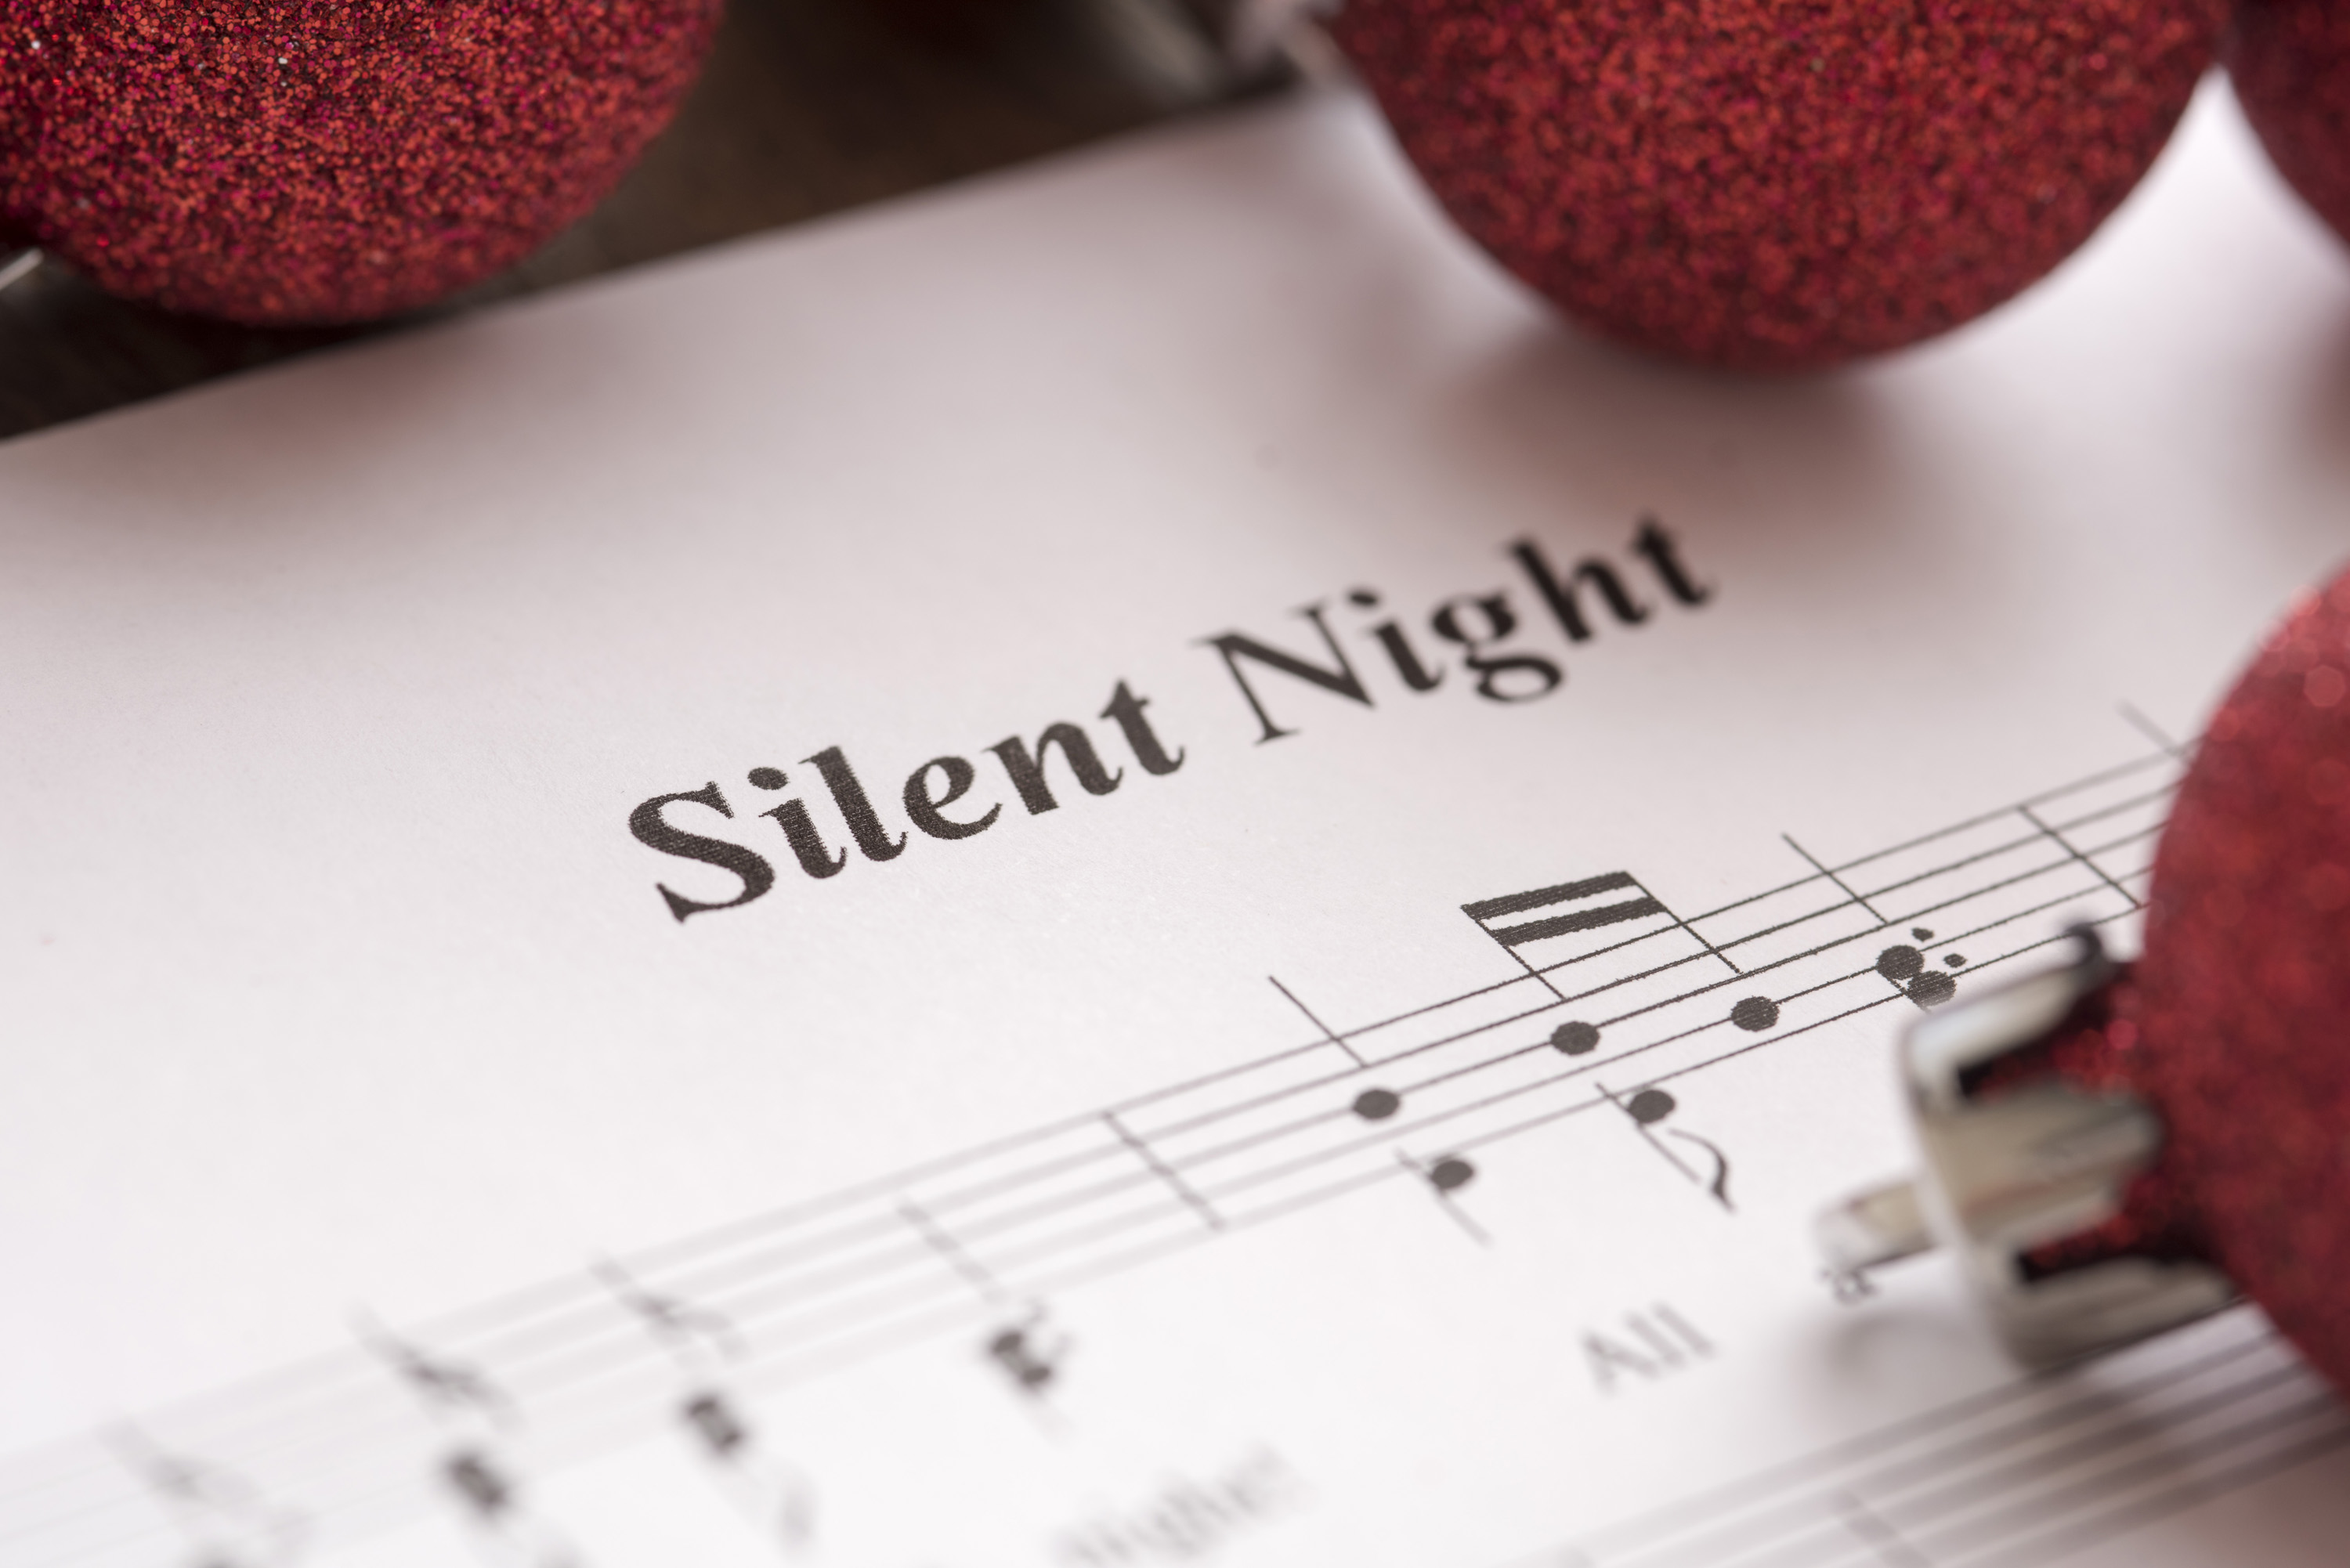 Silent Night music score background with festive red Christmas baubles in a close up view